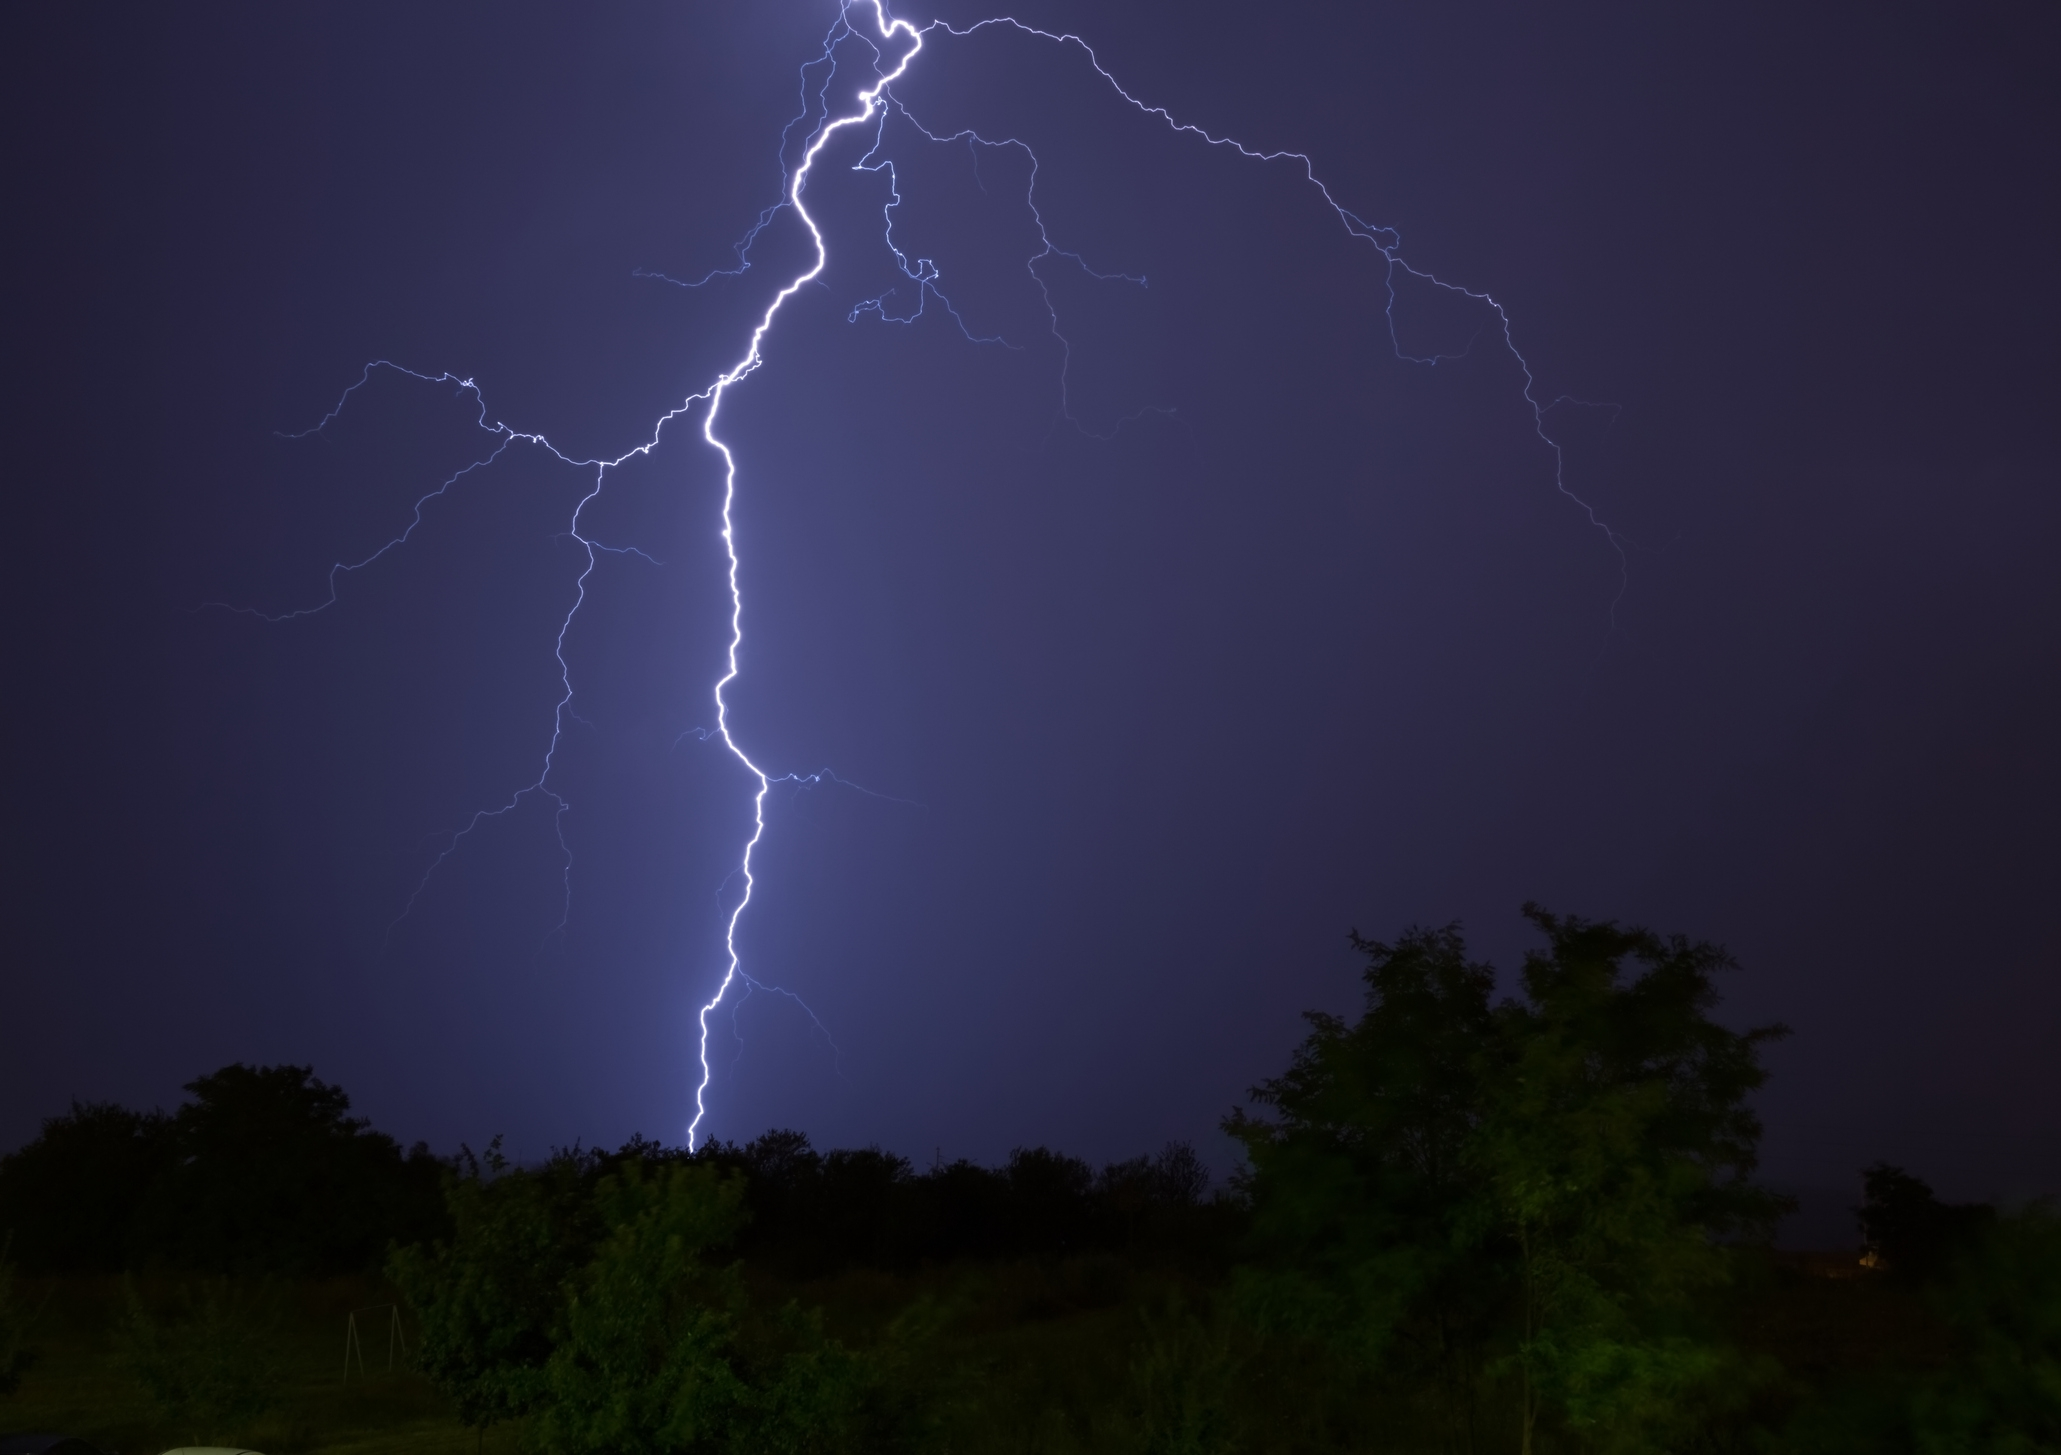 Thunderstorms Lightning Kill 27 In Eastern Indian State